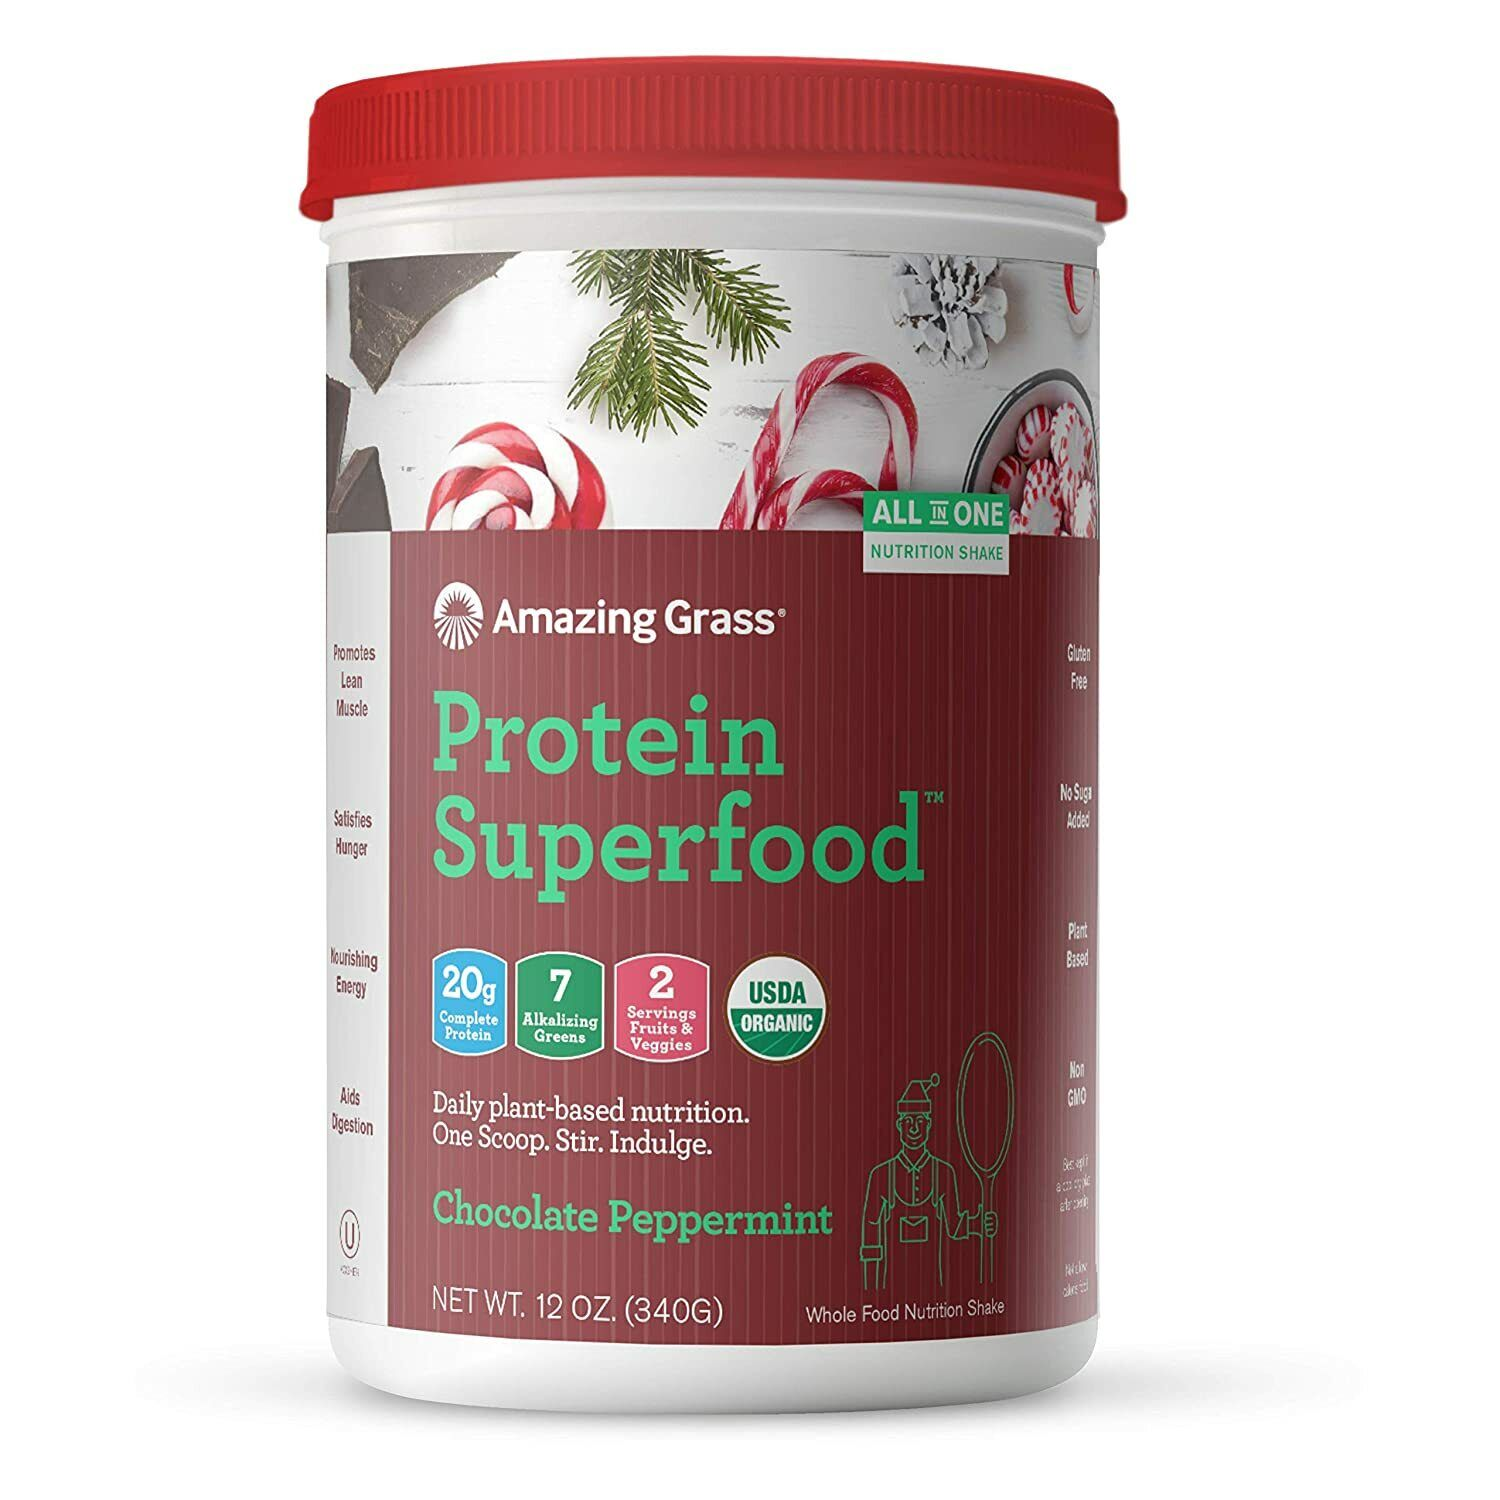 Amazing Grass Superfood organic Vegan Protein Powder Chocolate Peppermint Flavor